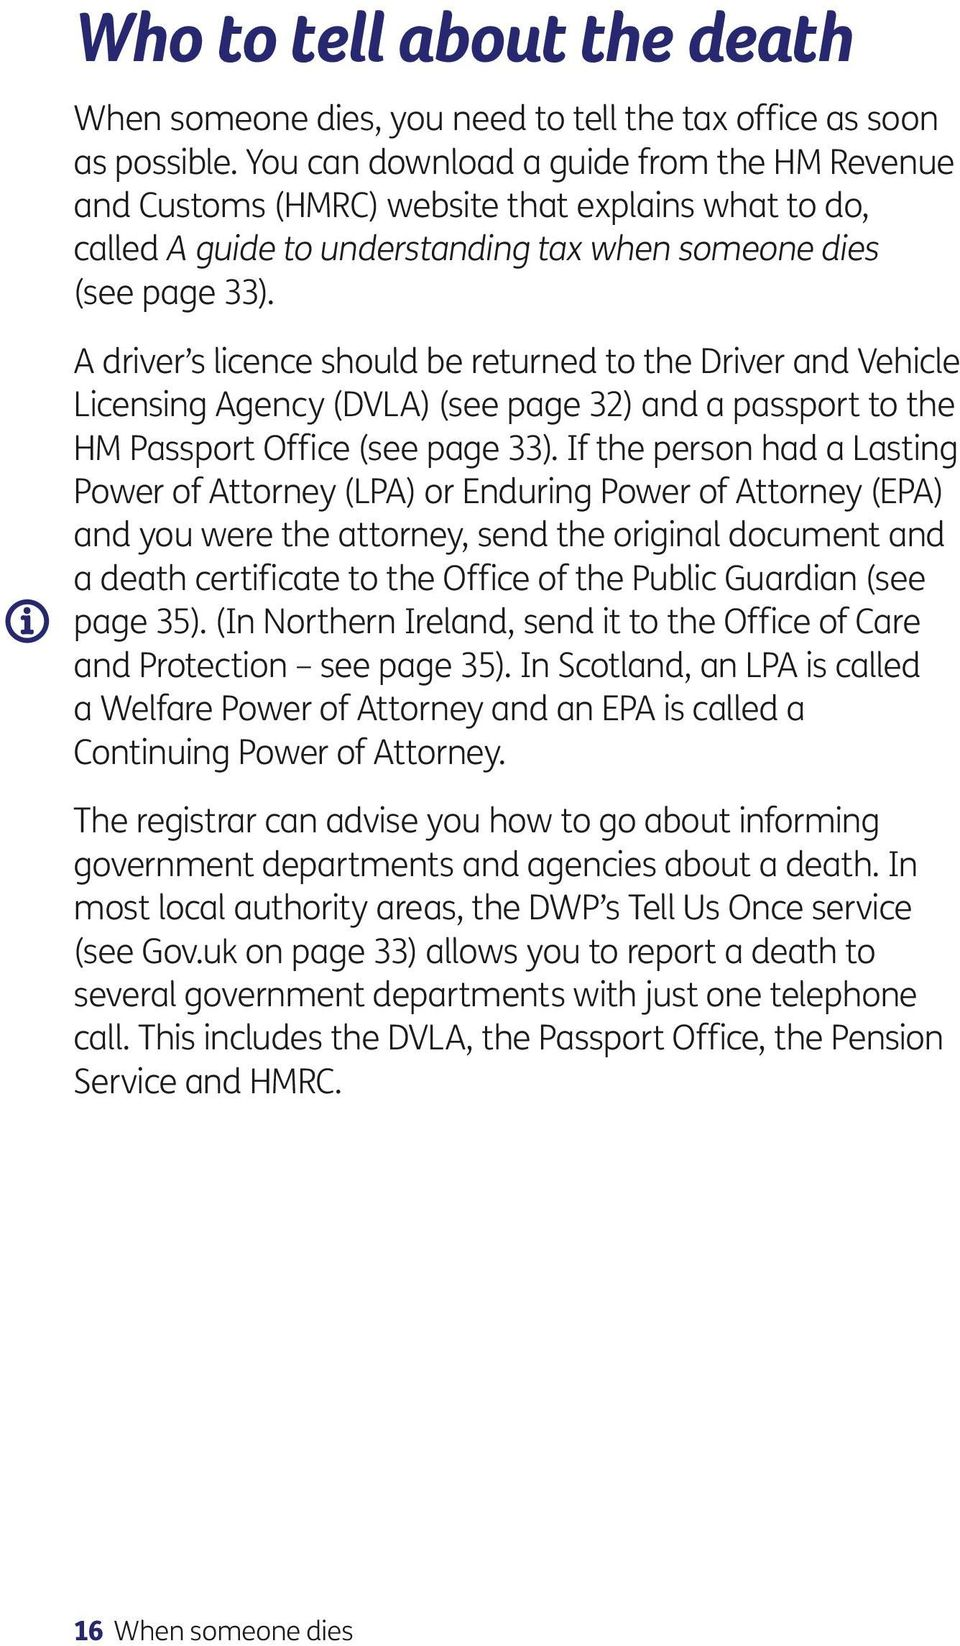 A driver s licence should be returned to the Driver and Vehicle Licensing Agency (DVLA) (see page 32) and a passport to the HM Passport Office (see page 33).